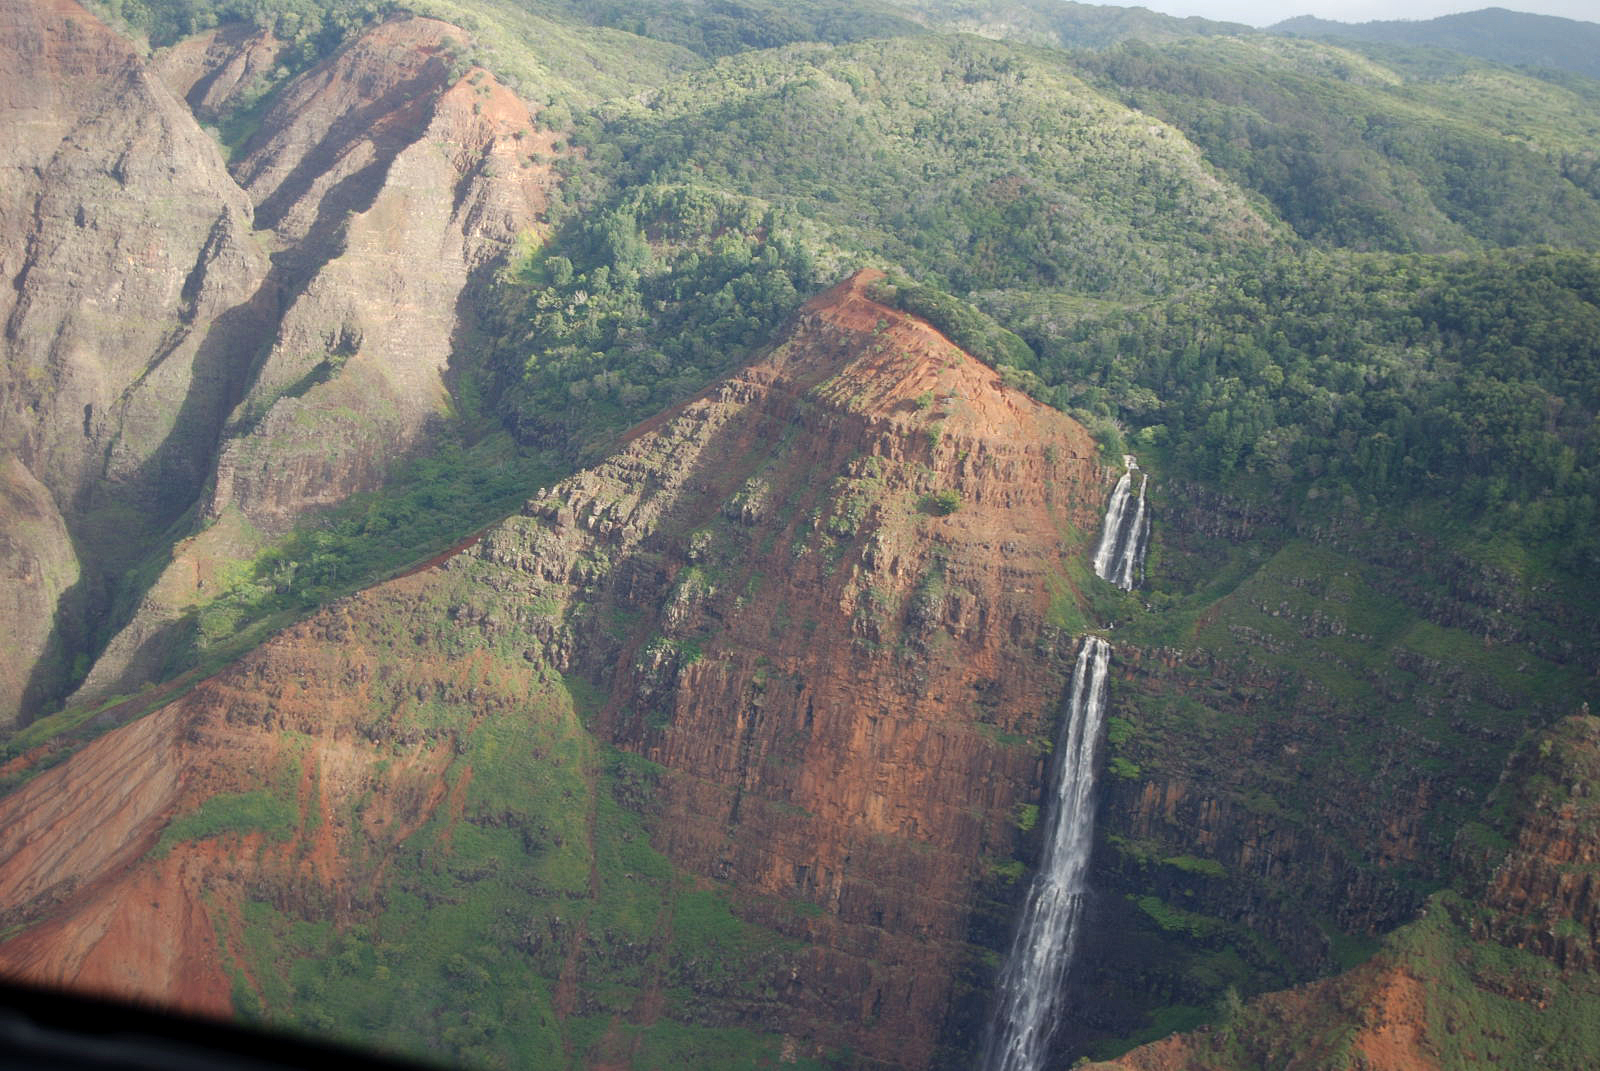 View of Kauai from the helicopter.